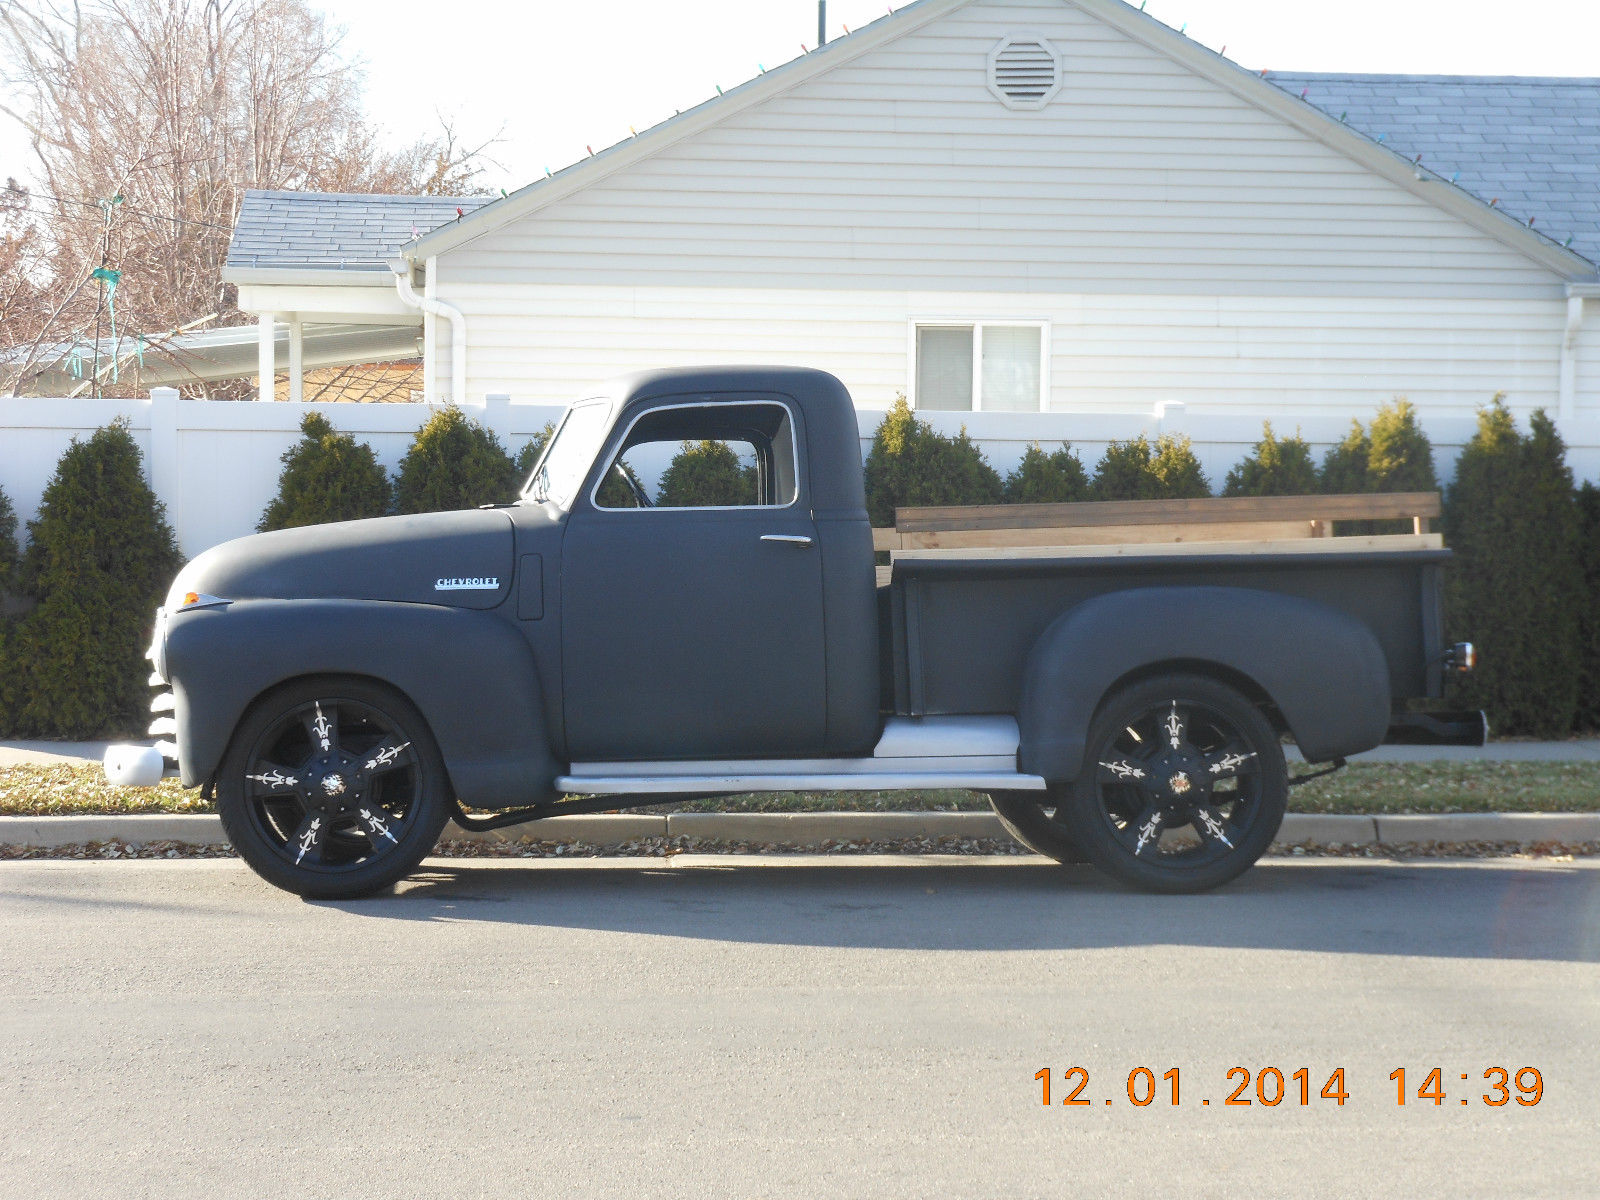 1948 1949 1950 1951 1952 1953 1954 Frame Off Restored Chevy 1 2 52 Ford Pick Up Ton Truck